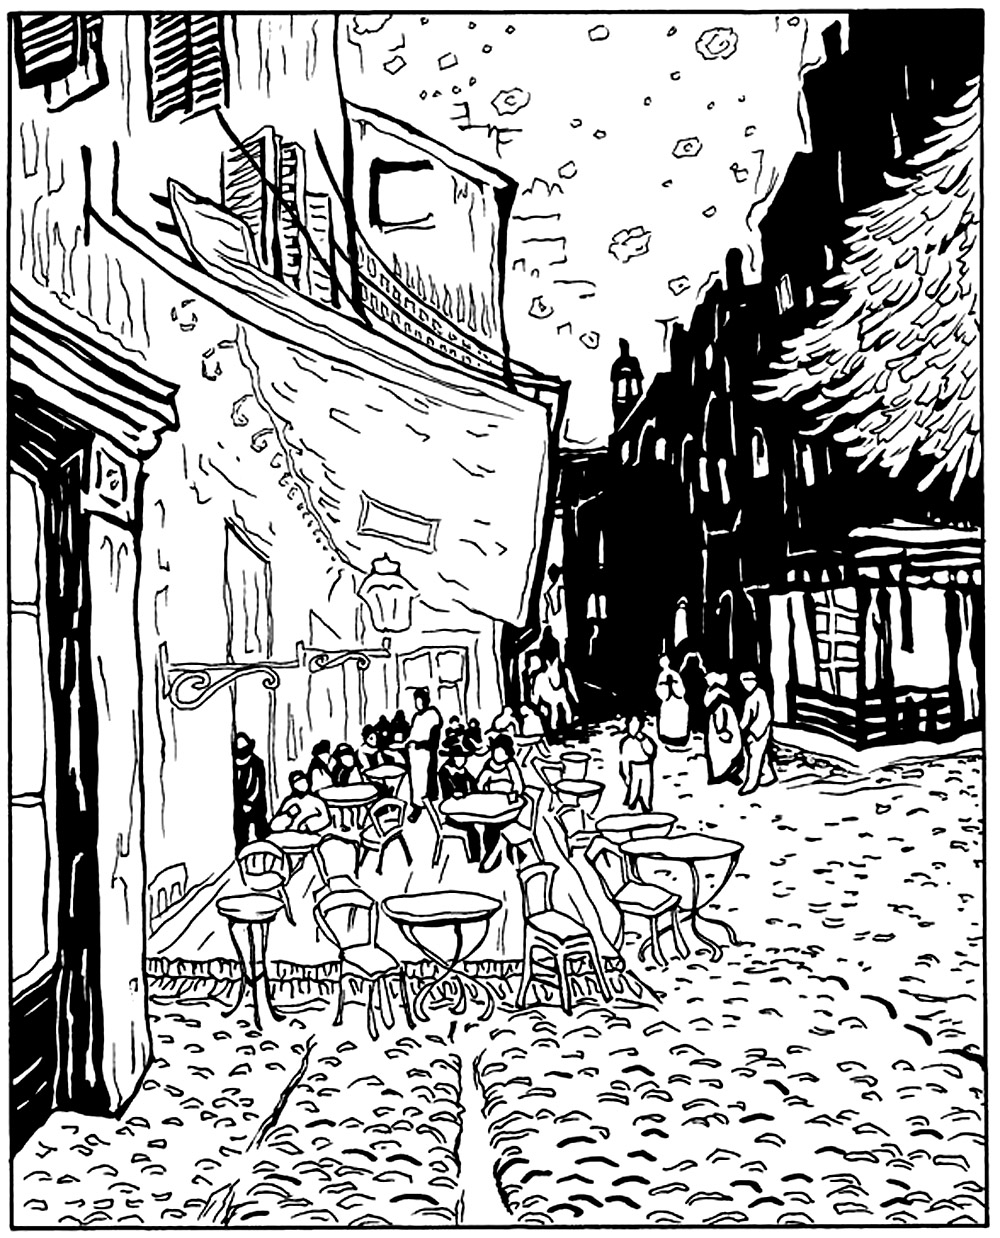 Coloring adult van gogh le cafe de nuit